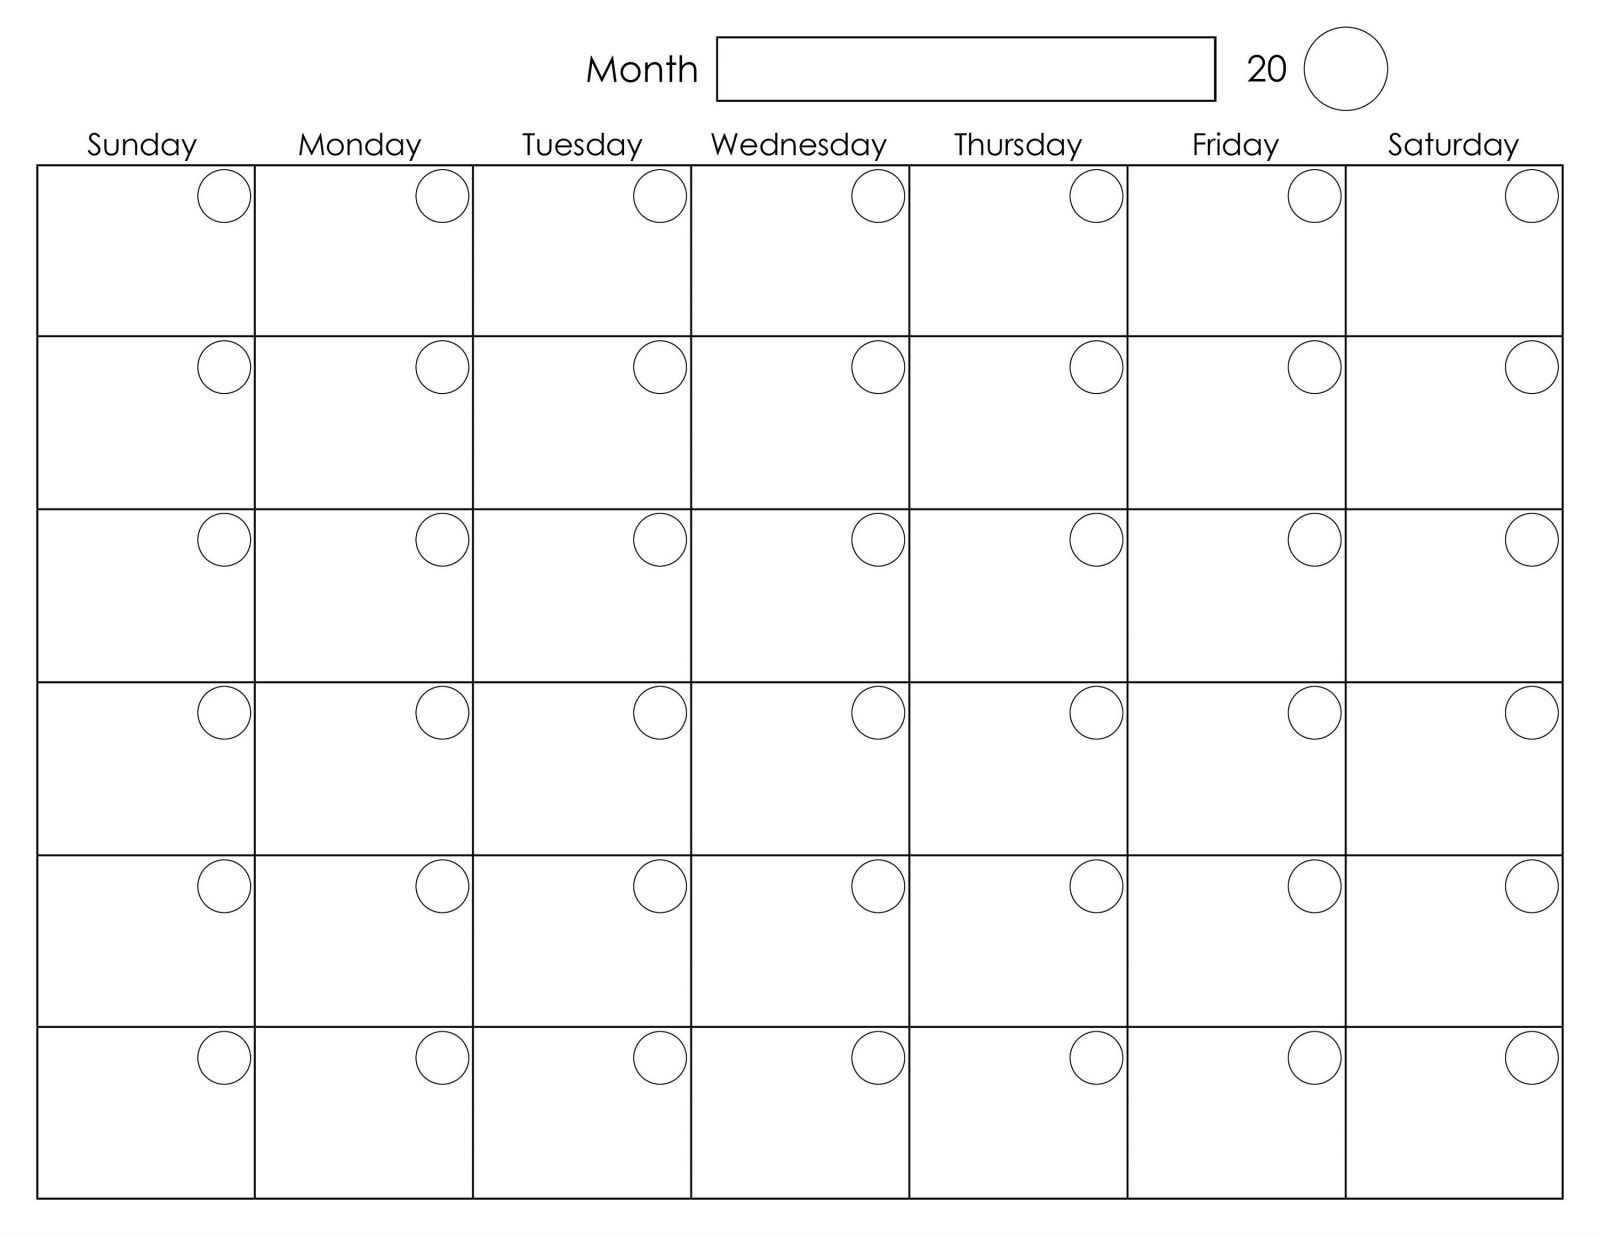 Free Printable 2020 Calendar Template Pdf, Word, Excel, Page Perky Calender To Print With Monday Start Date